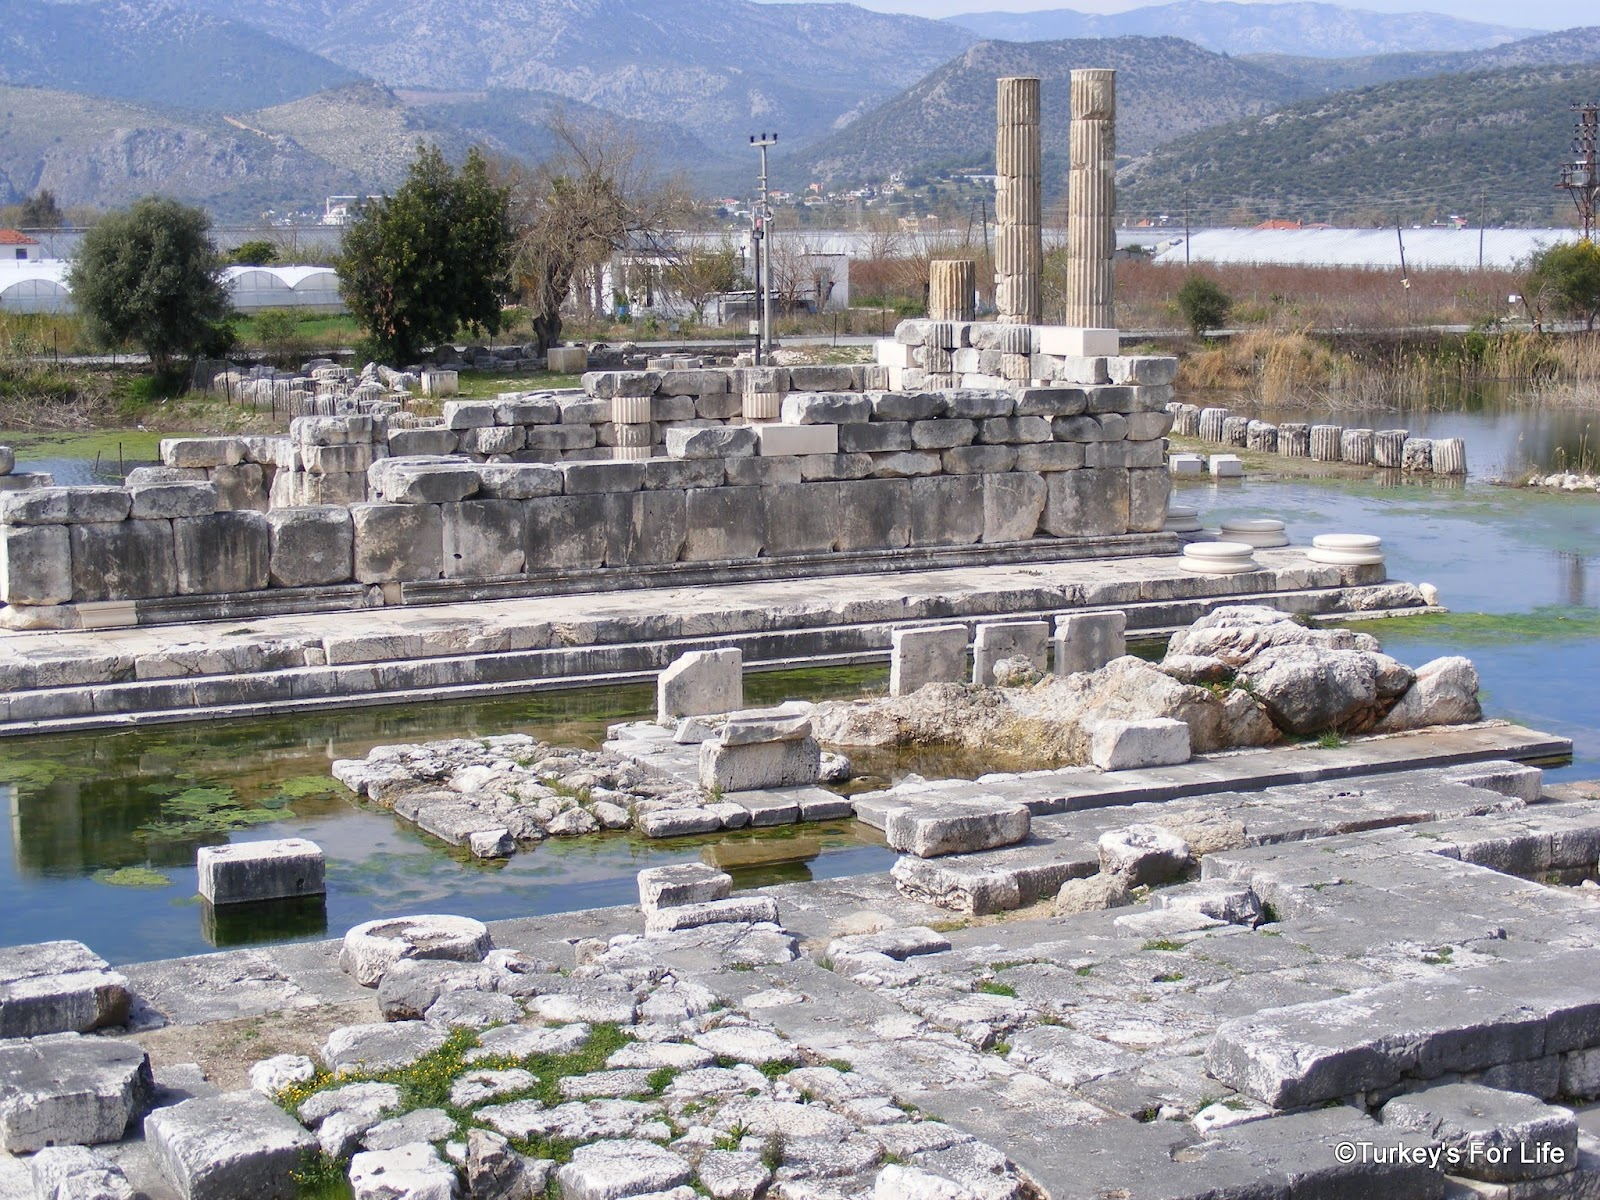 Exploring The Xanthos Valley - Letoon In Photos